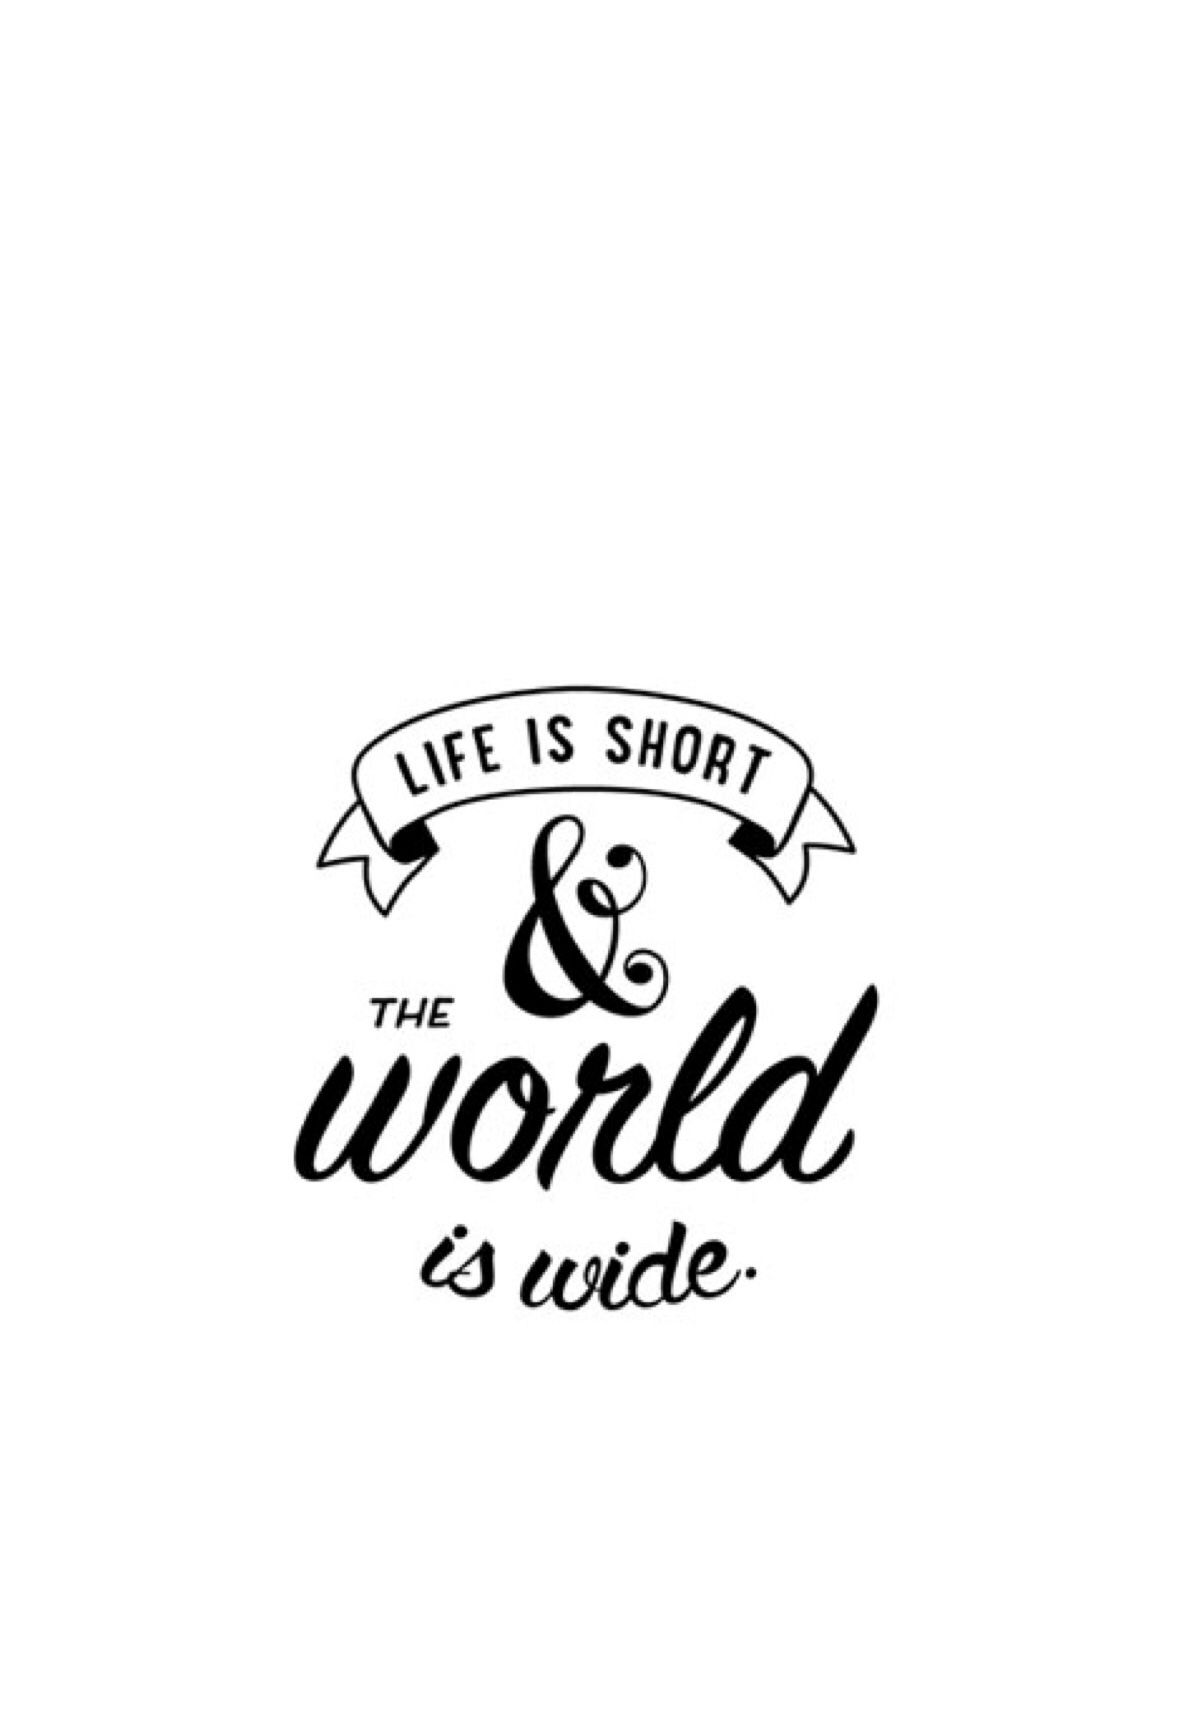 Shorts Quotes About Life Life Is Short & The World Is Widequotequotesstrengthhope